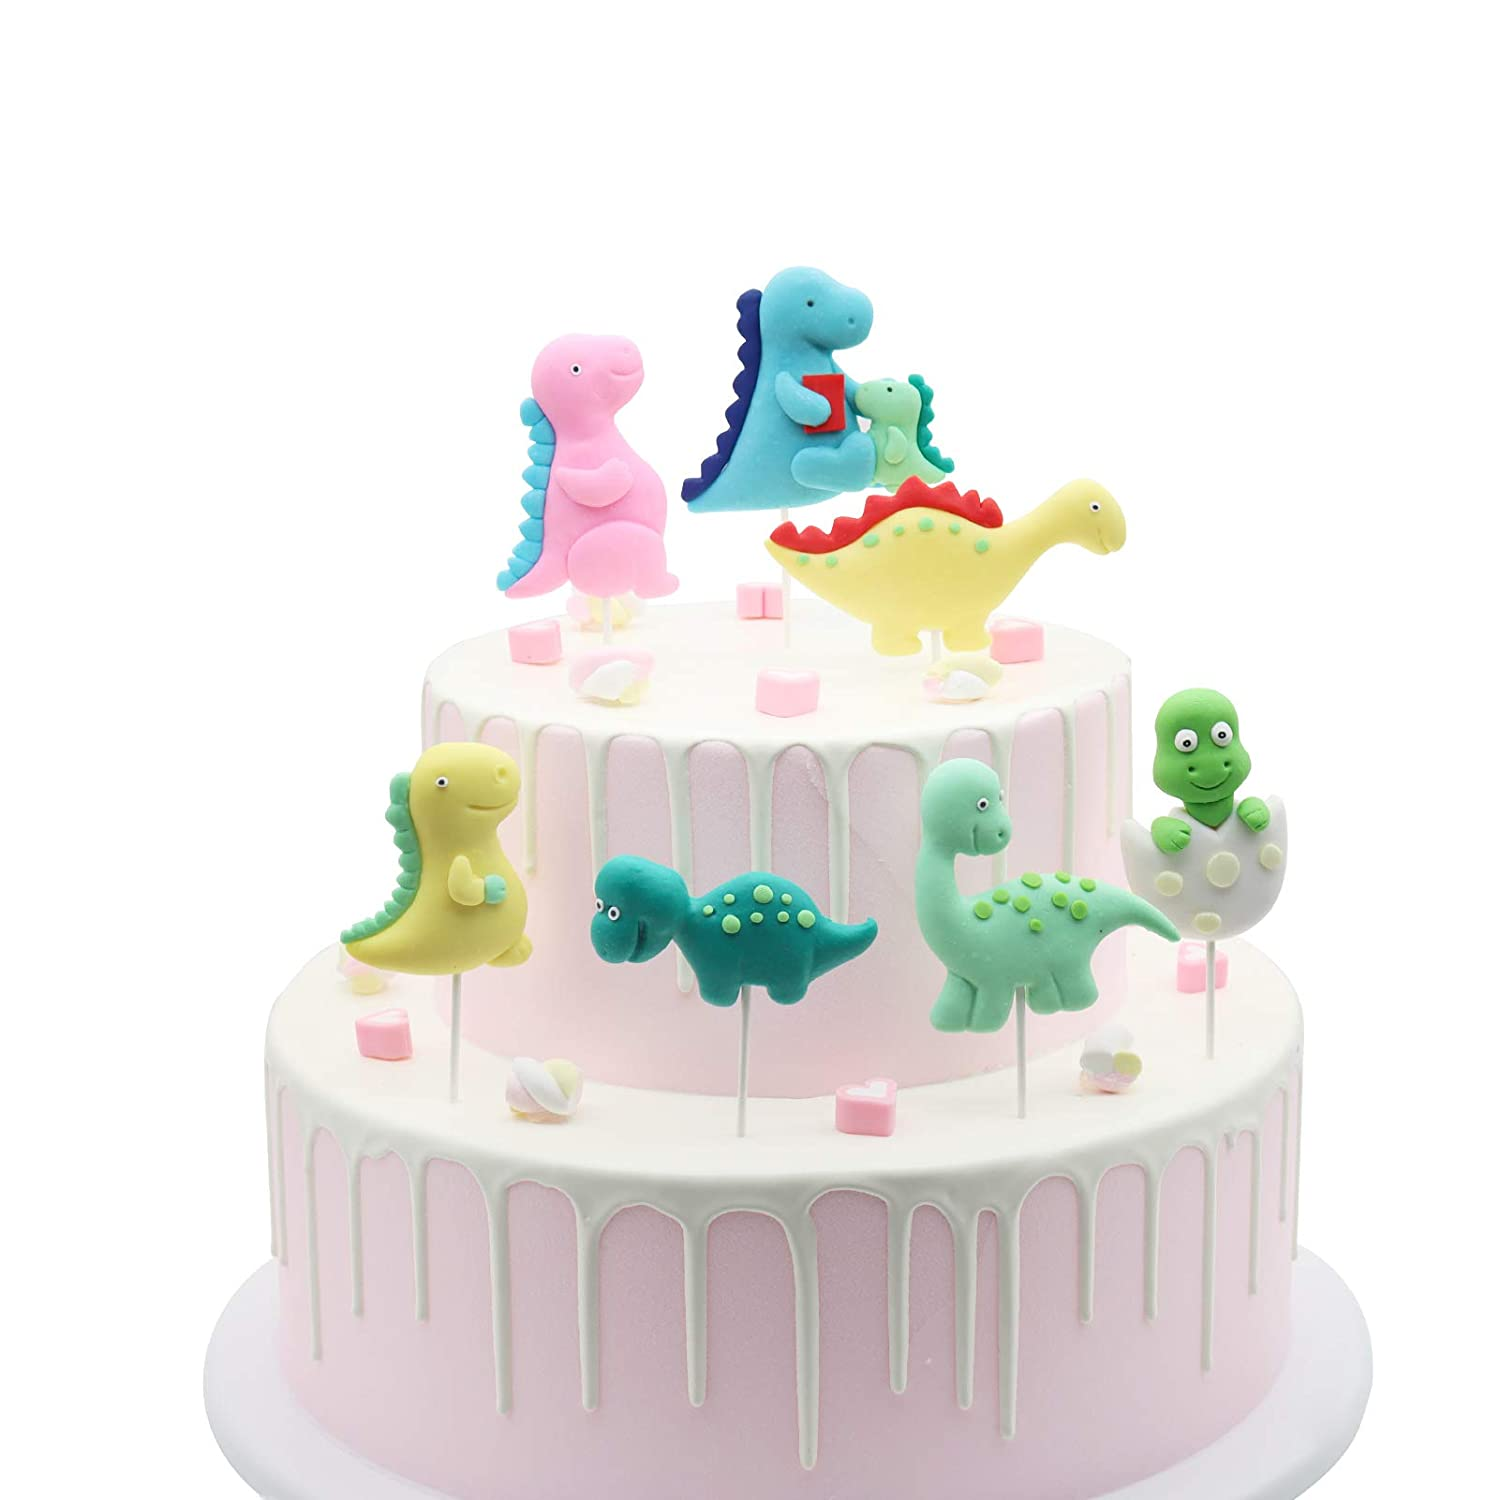 Birthday Cake Topper Dinosaur Cupcake Toppers 3D Dinosaur Cake Topper Dinosaur Theme Party Cartoon Animal Cupcake Toppers Cake Decorations Supplies,7 pcs